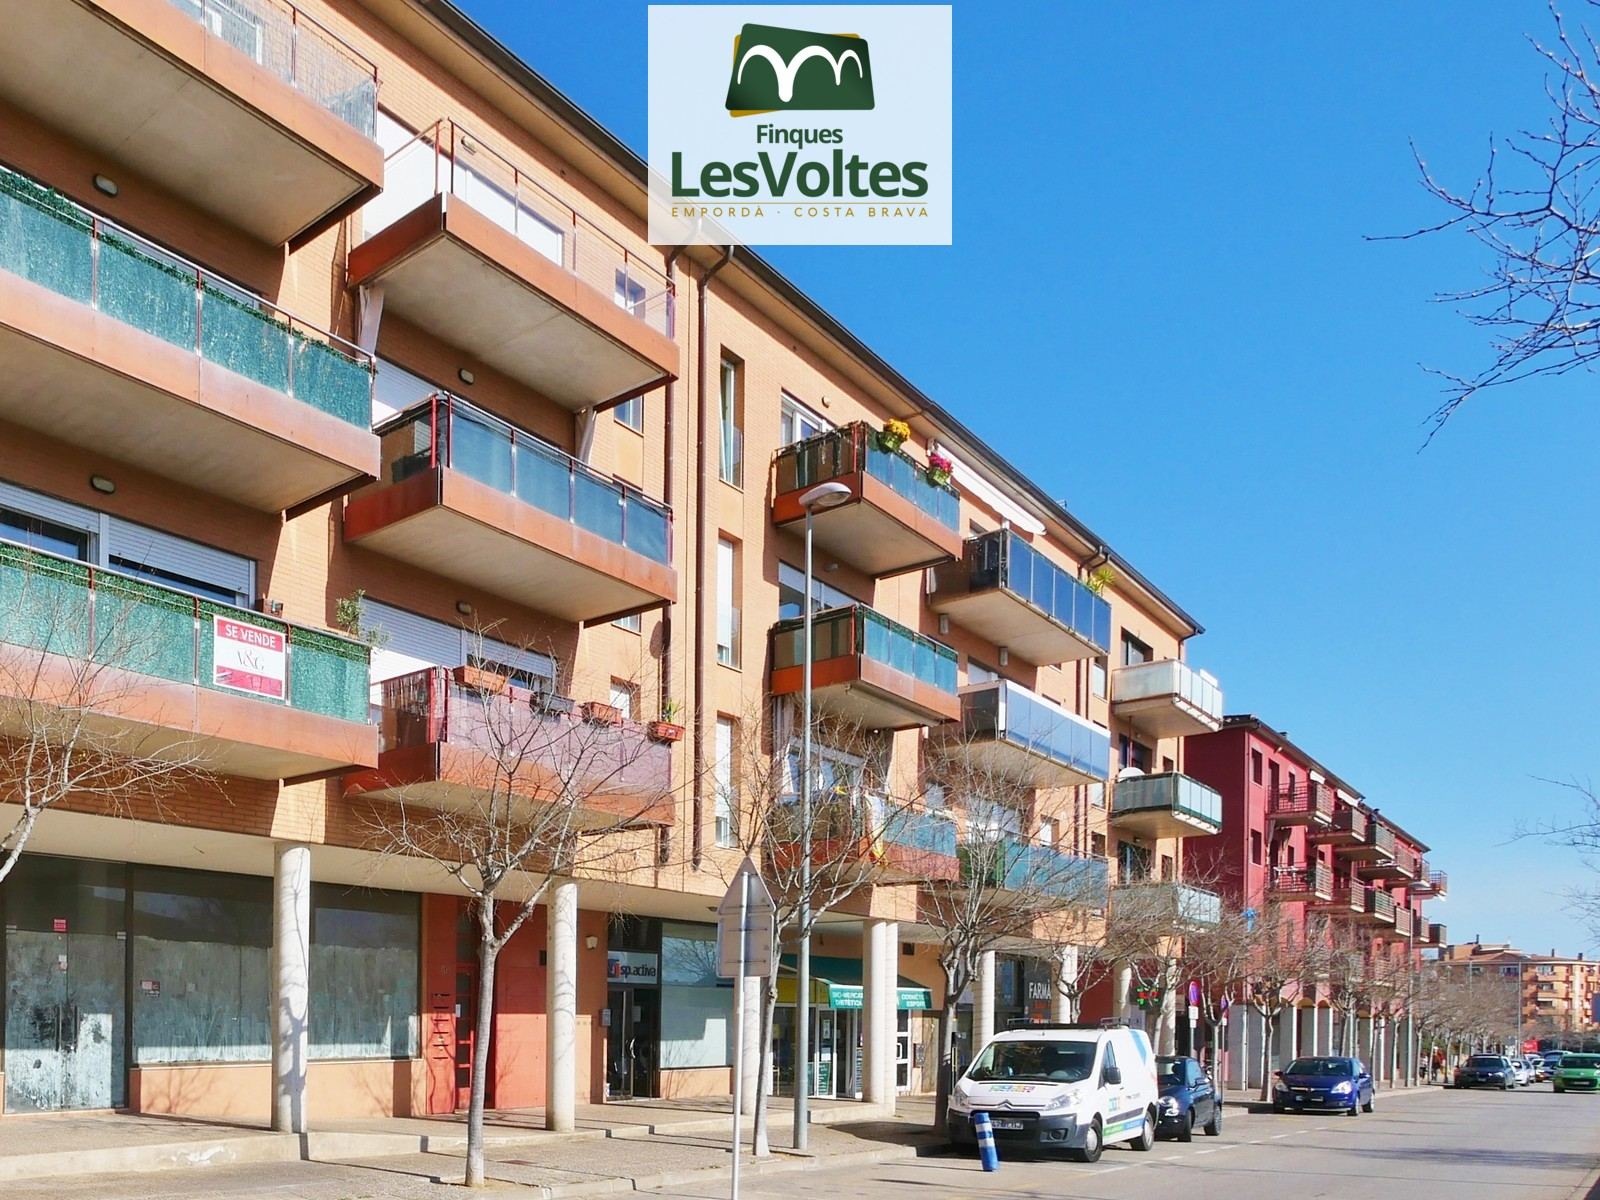 COMMERCIAL PREMISES WITH GREAT ESCAPARATE FOR SALE IN PALAFRUGELL PASSAGE AREA.